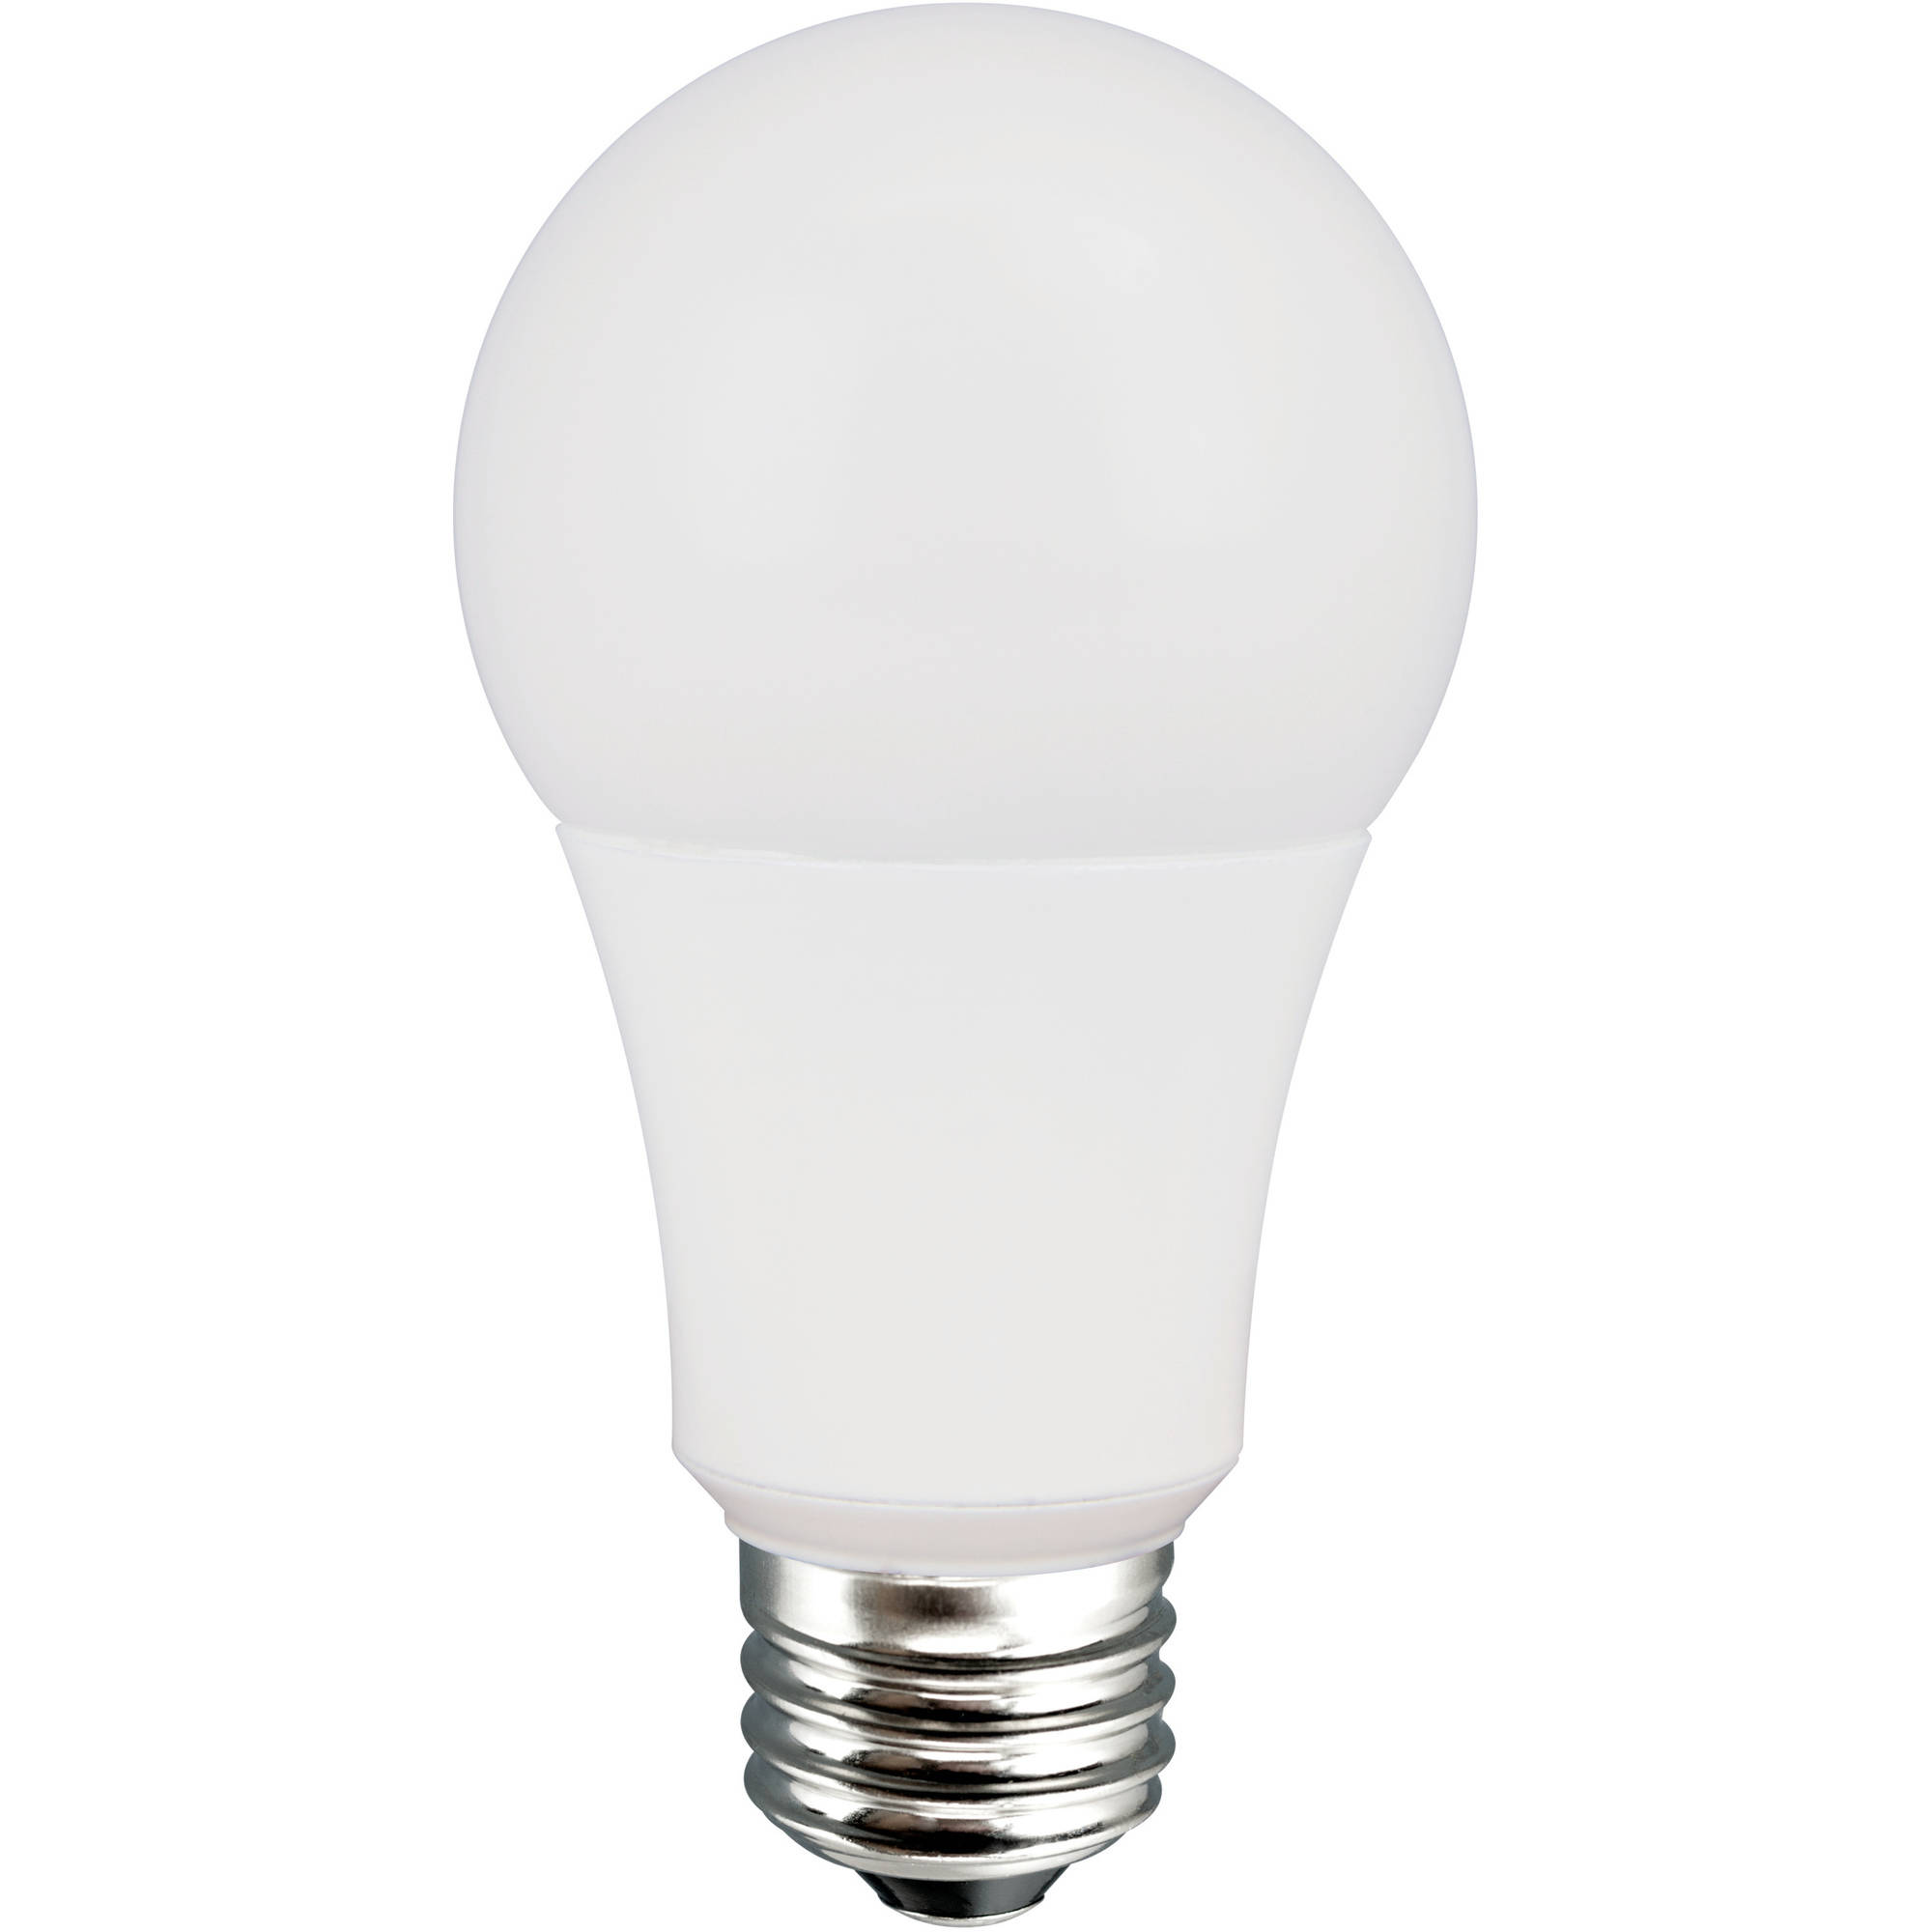 great value led a19 light bulb 16w 100w equivalent daylight. Black Bedroom Furniture Sets. Home Design Ideas